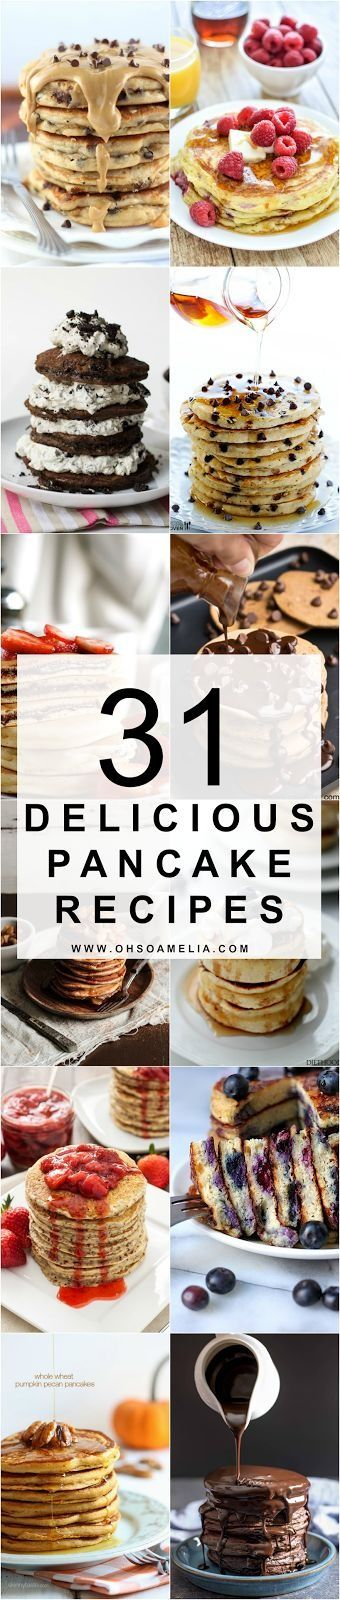 Pancake Day is around the corner, meaning these 31 delicious recipes are NEEDED - yum!